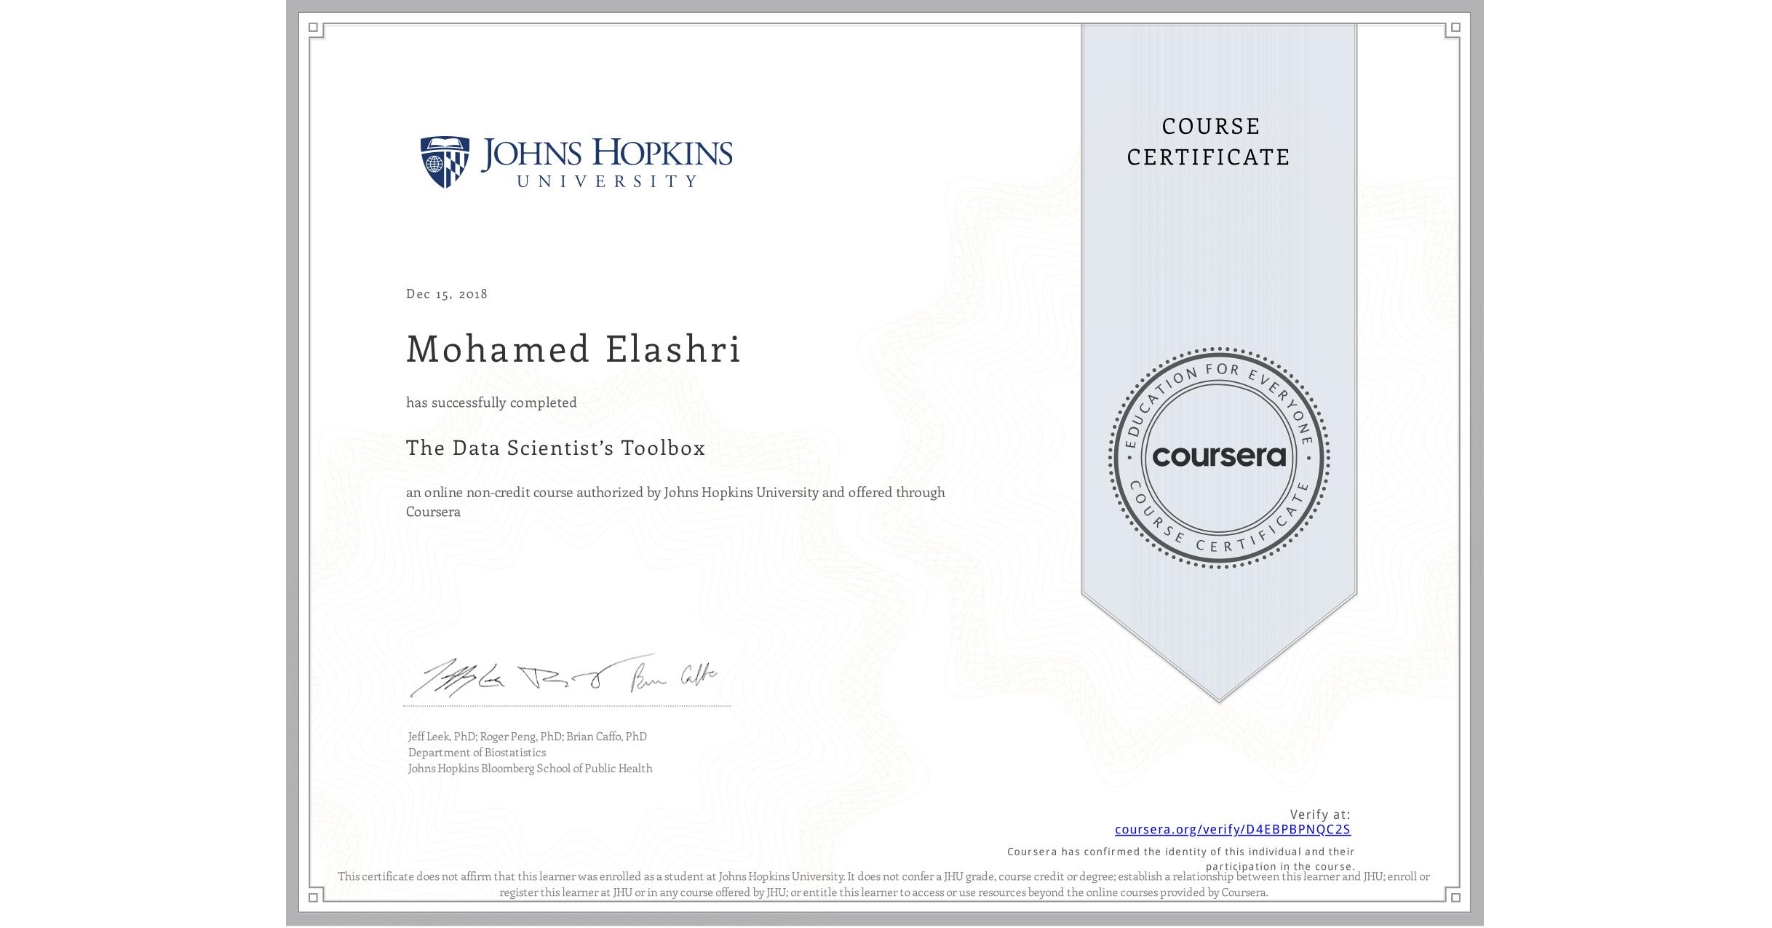 View certificate for Mohamed Elashri, The Data Scientist's Toolbox, an online non-credit course authorized by Johns Hopkins University and offered through Coursera